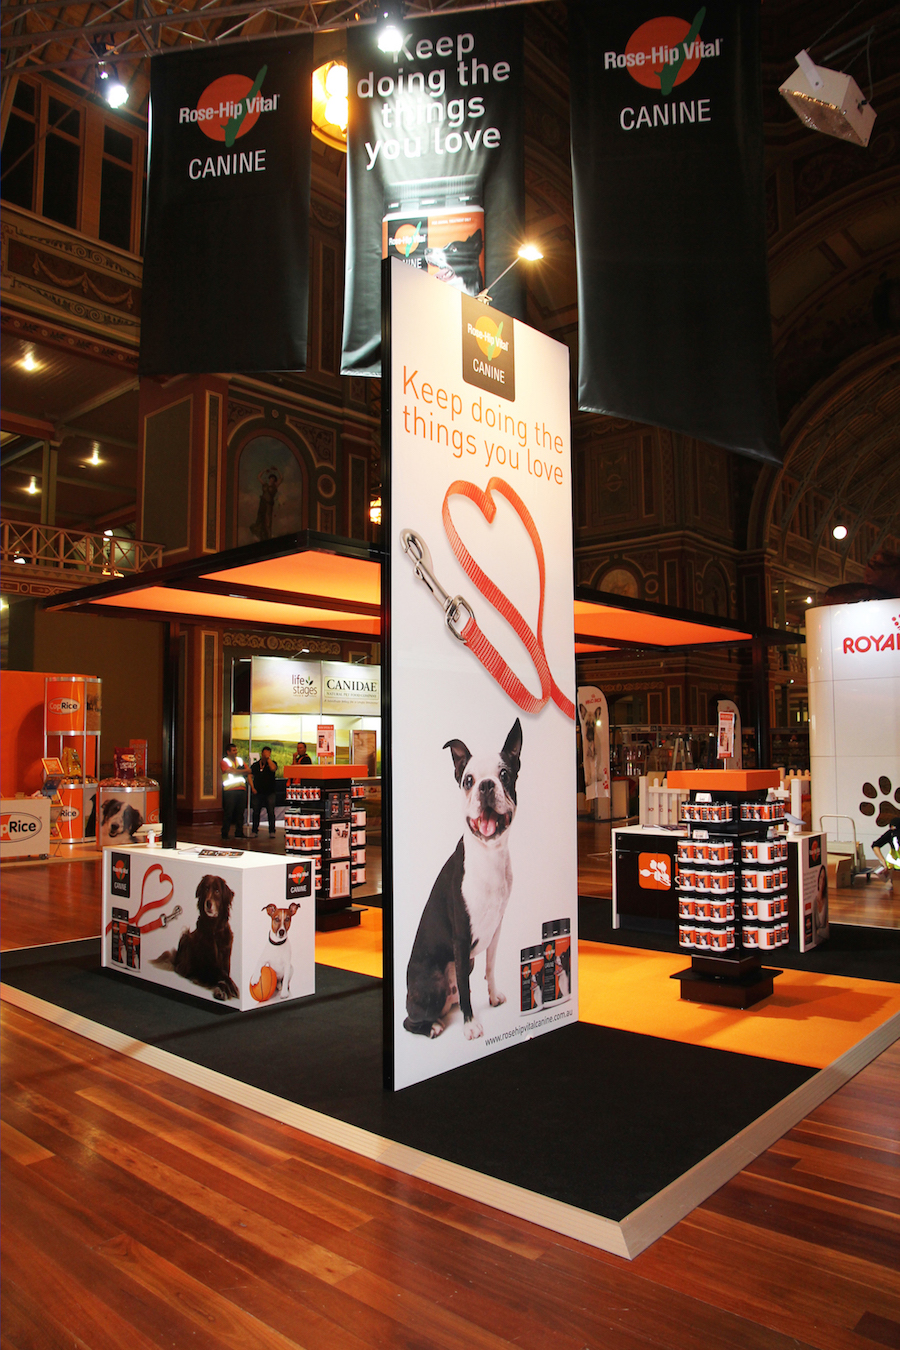 Exhibition Booth Hire Gold Coast : Displays — rosehip vital canine